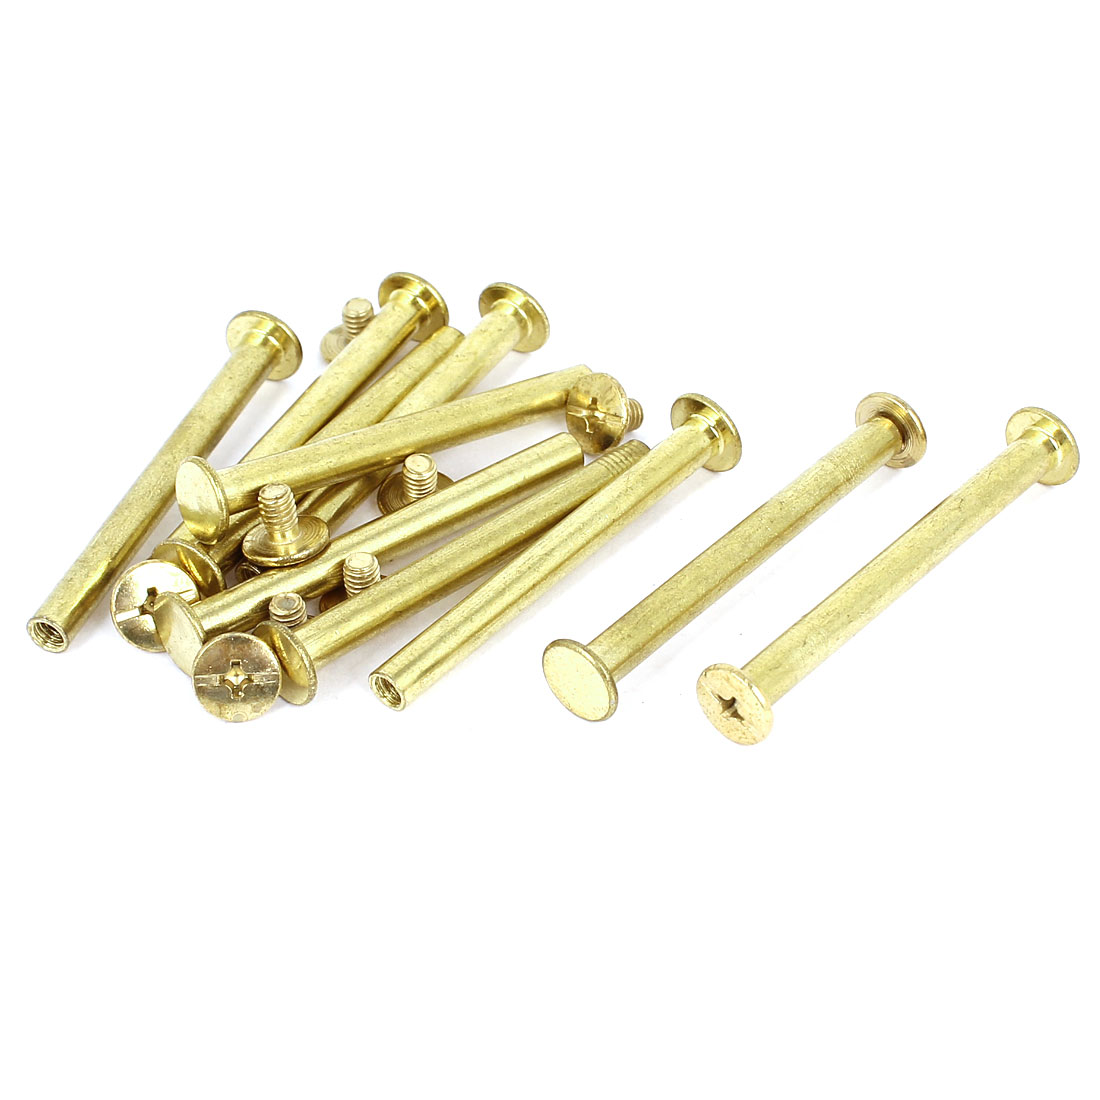 Unique Bargains Brass Plated 5x50mm Binding Chicago Screw Post 10pcs for Leather Scrapbook